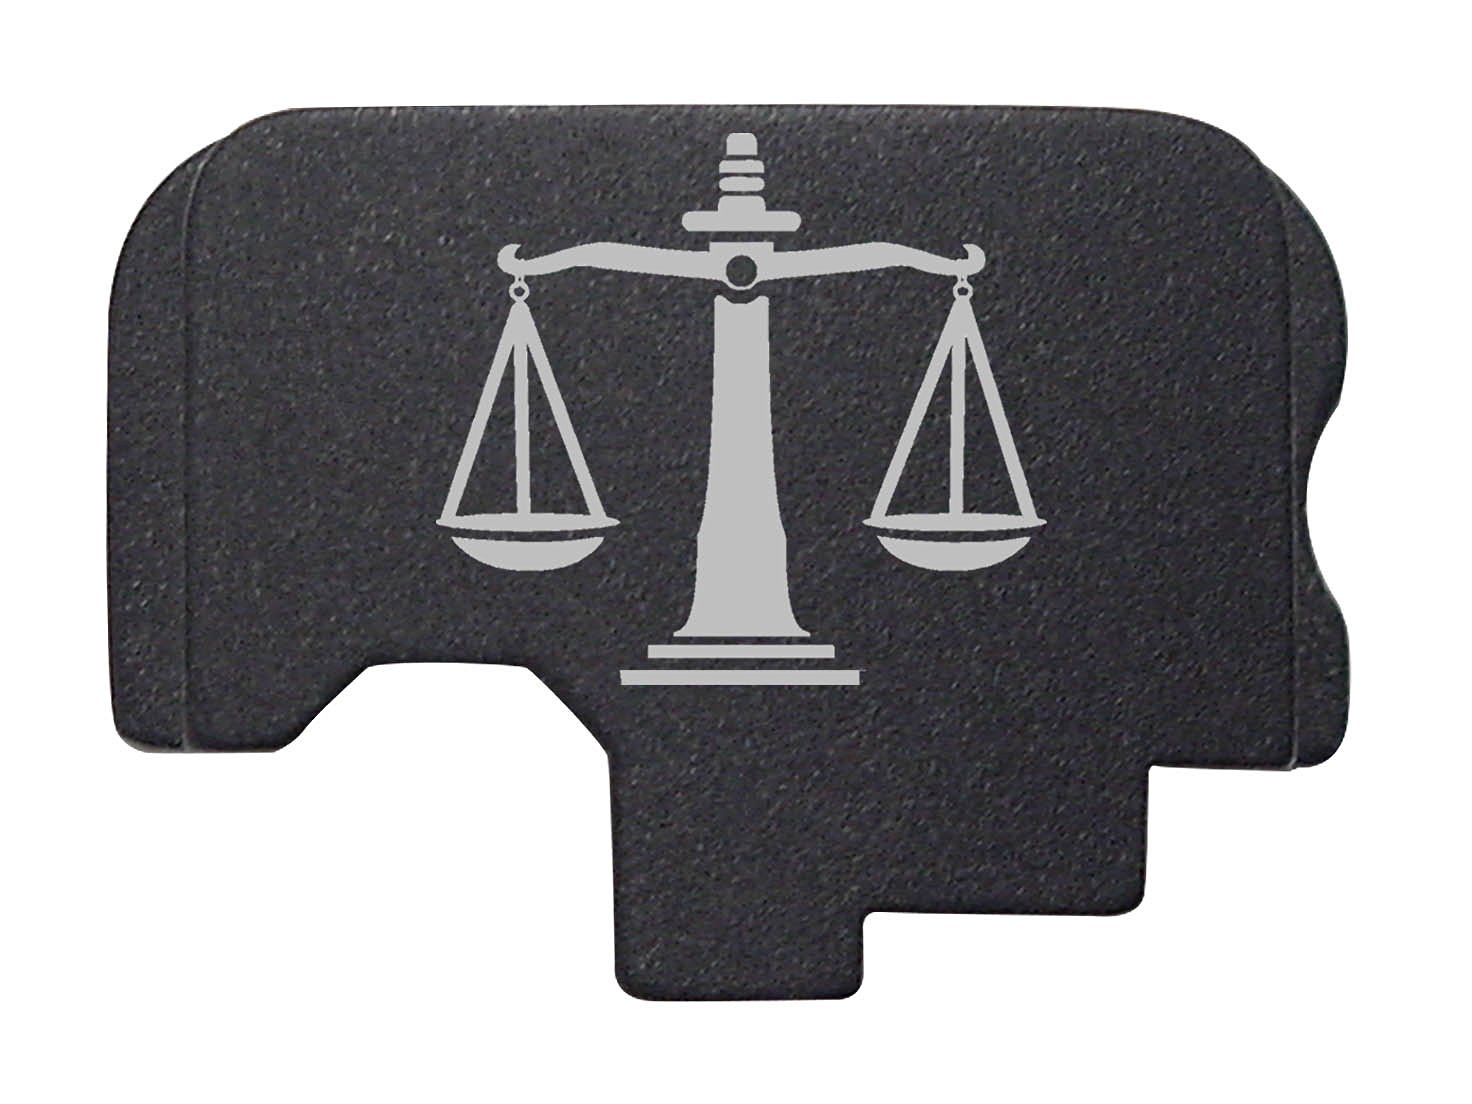 Justice Scales Engraved Black Rear Slide Cover Plate For Kahr Arms .45 ACP Models: CT45 CW45 CM45 TP45 P45 PM45